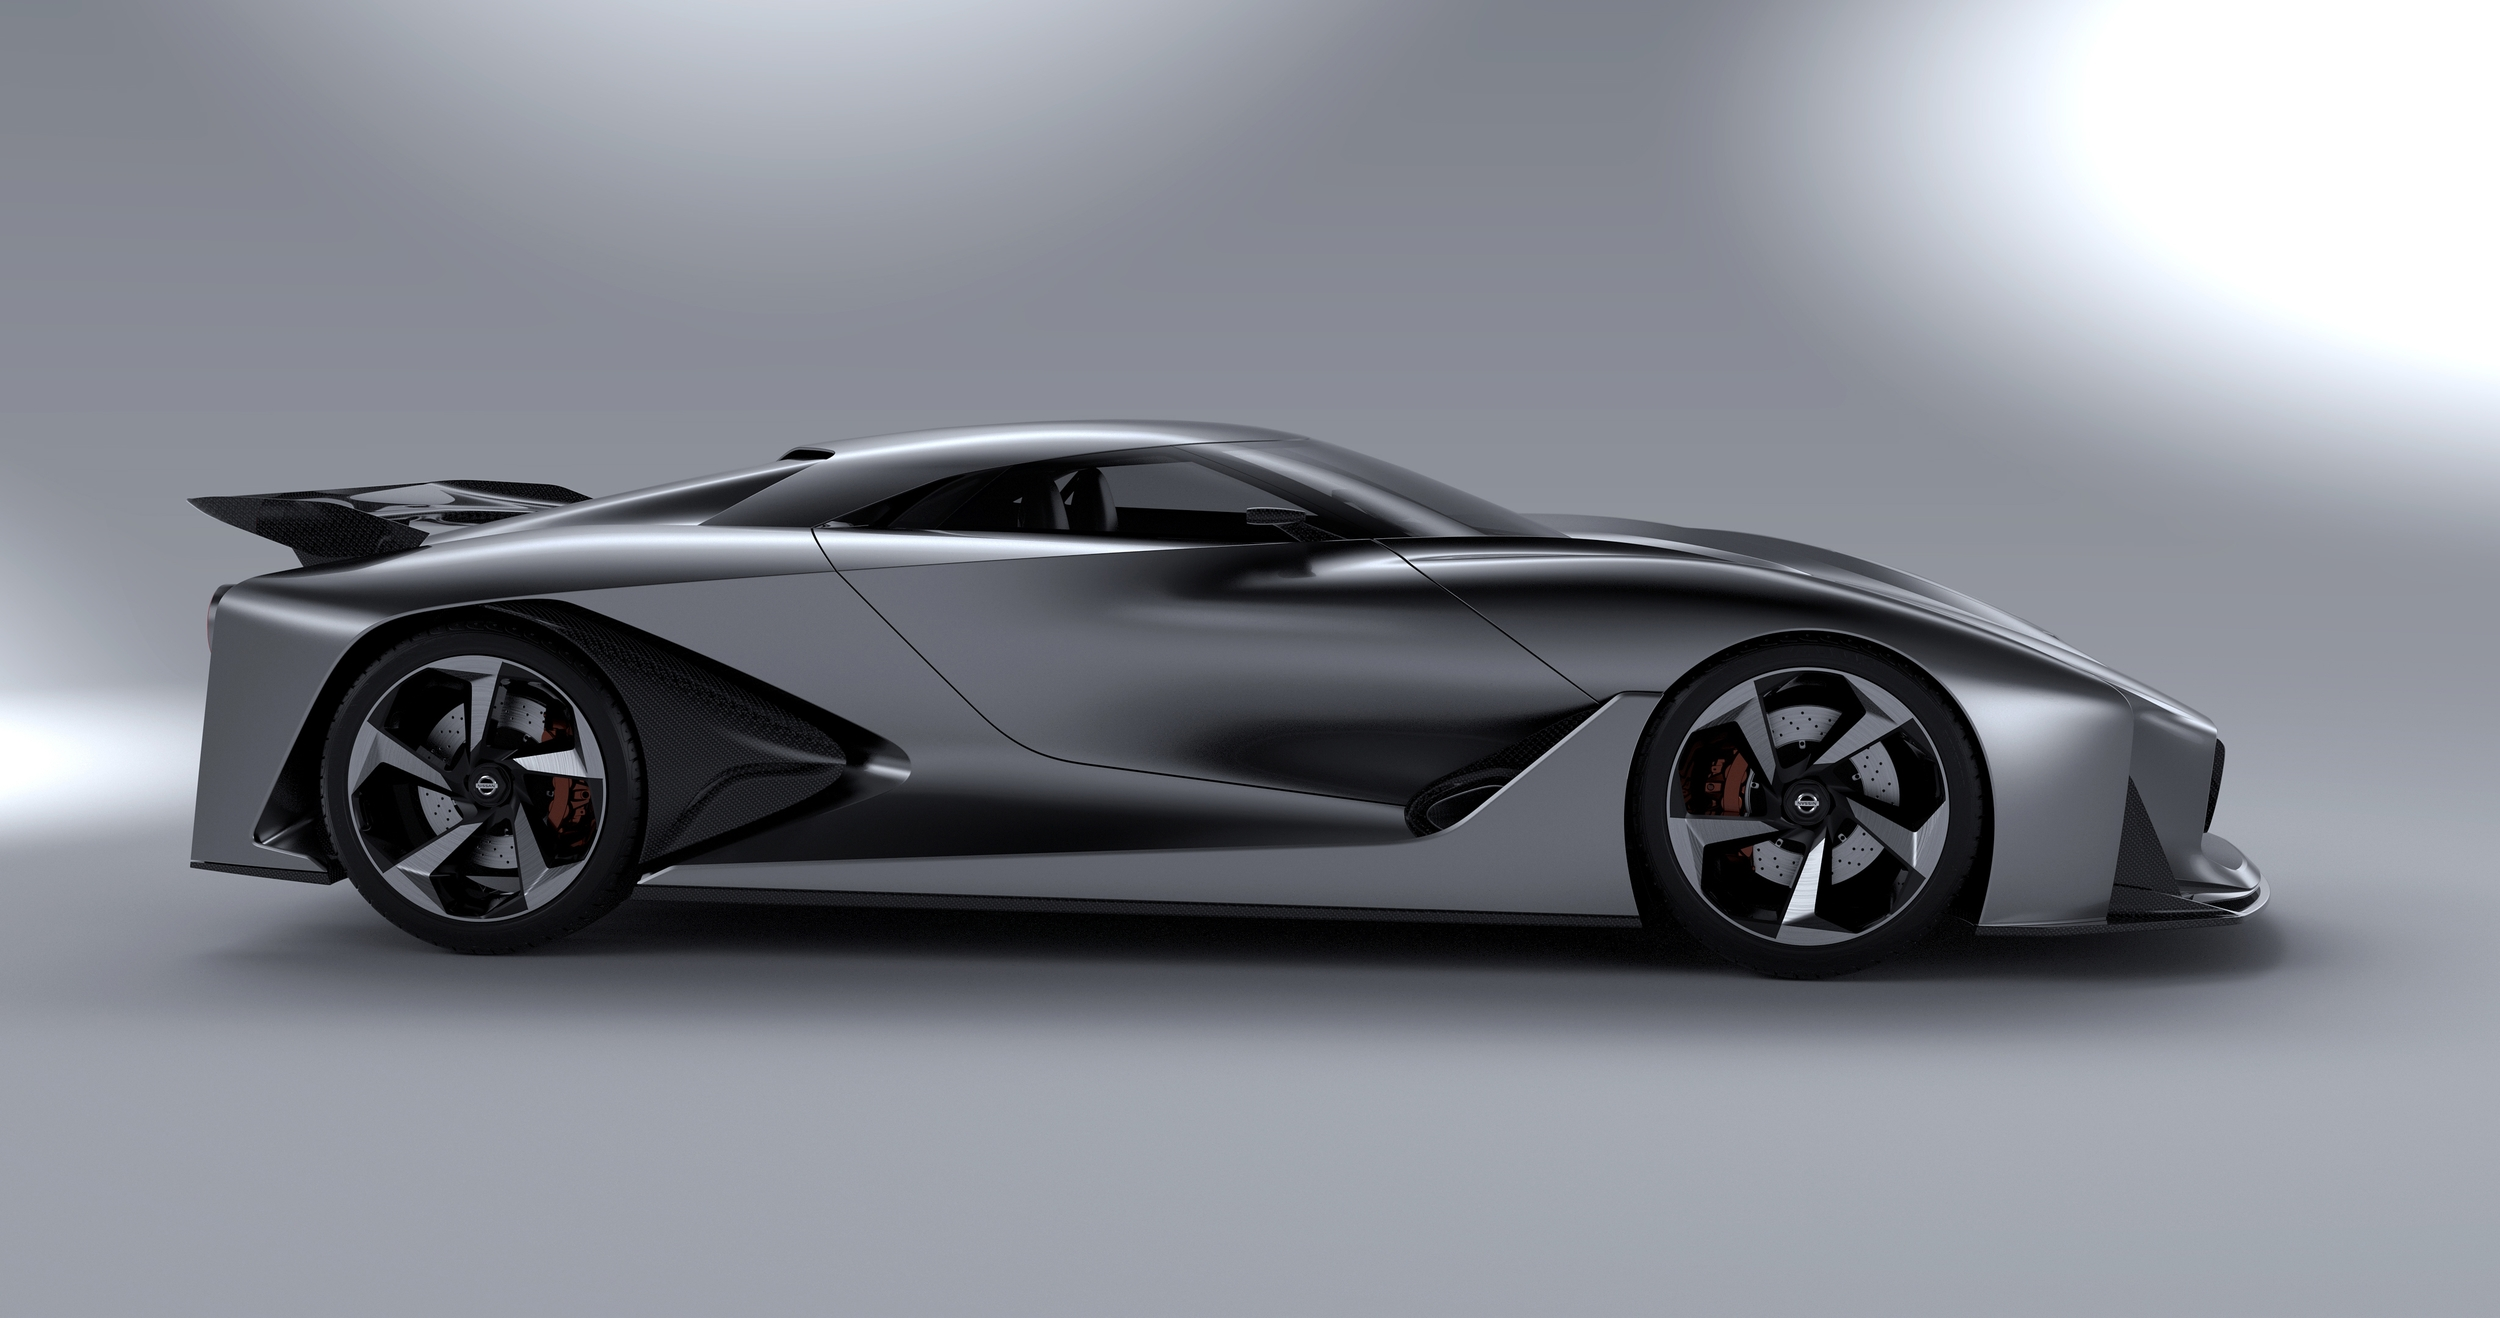 2014_Nissan_Concept_2020_Vision_Gran_Turismo_023_4651.jpg